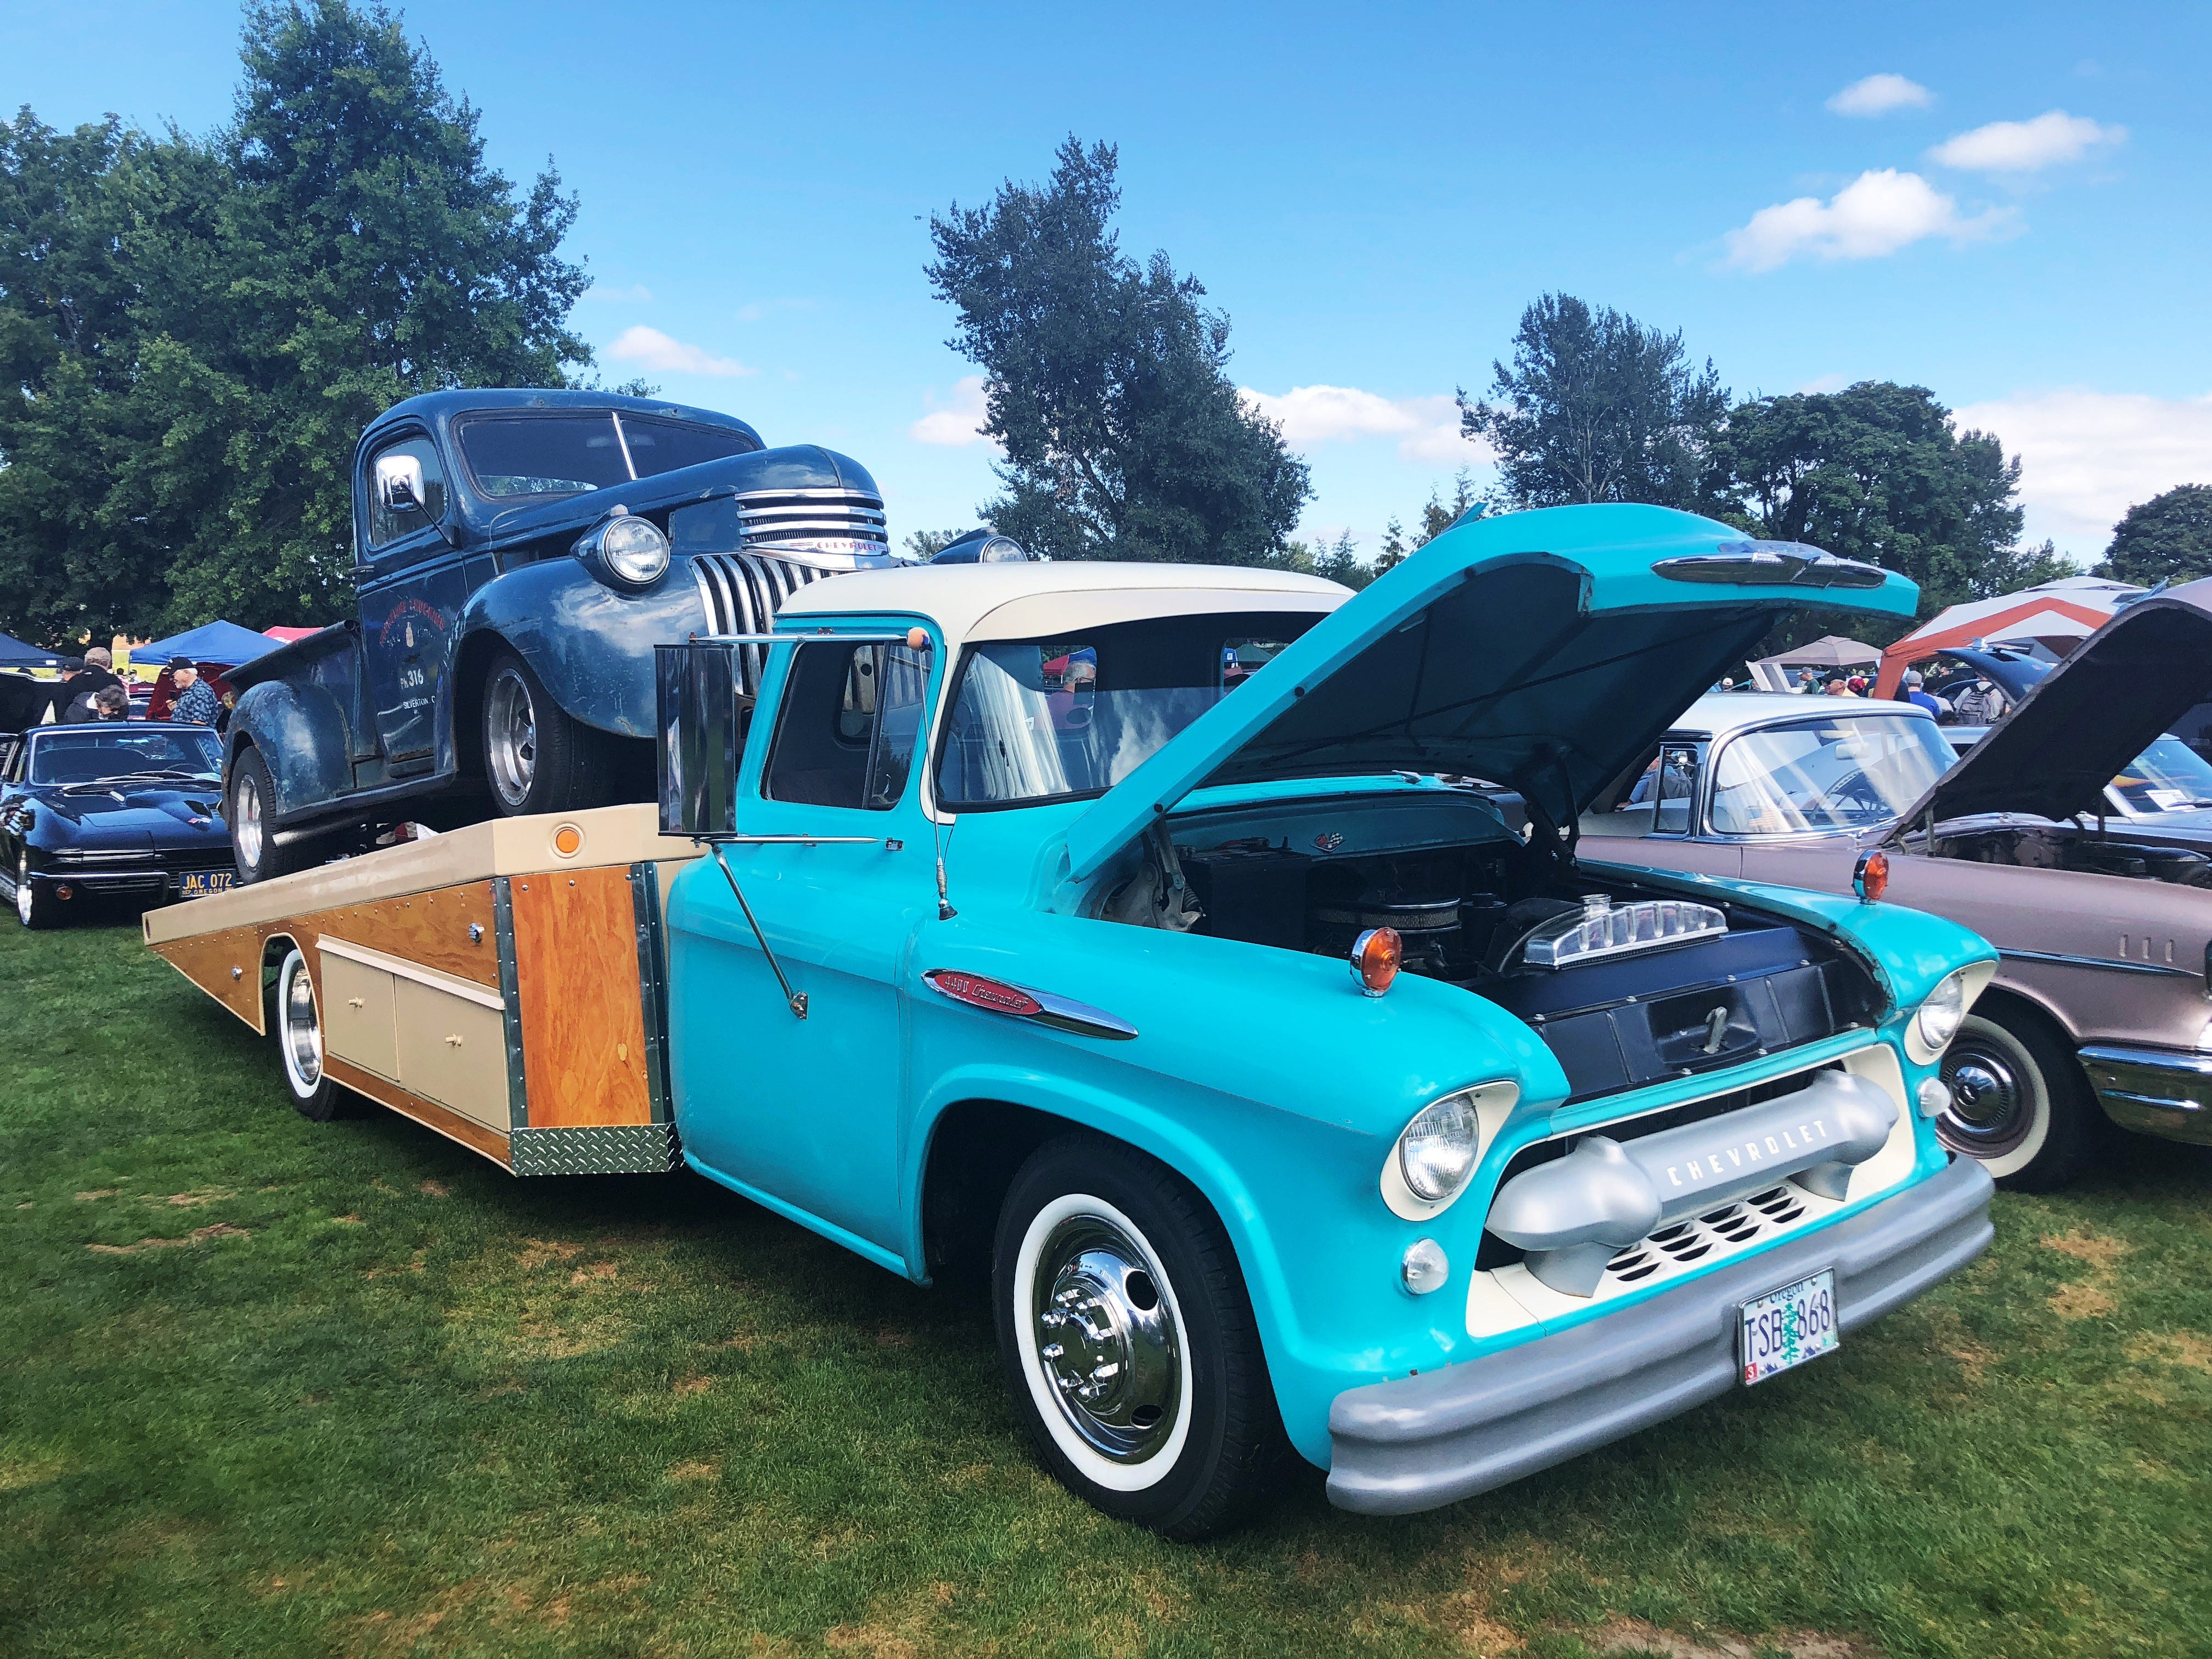 A 1957 Chevy Truck at the 27th Annual Carousel Cruise at Riverfront Park in Salem on Saturday, Sept. 1.